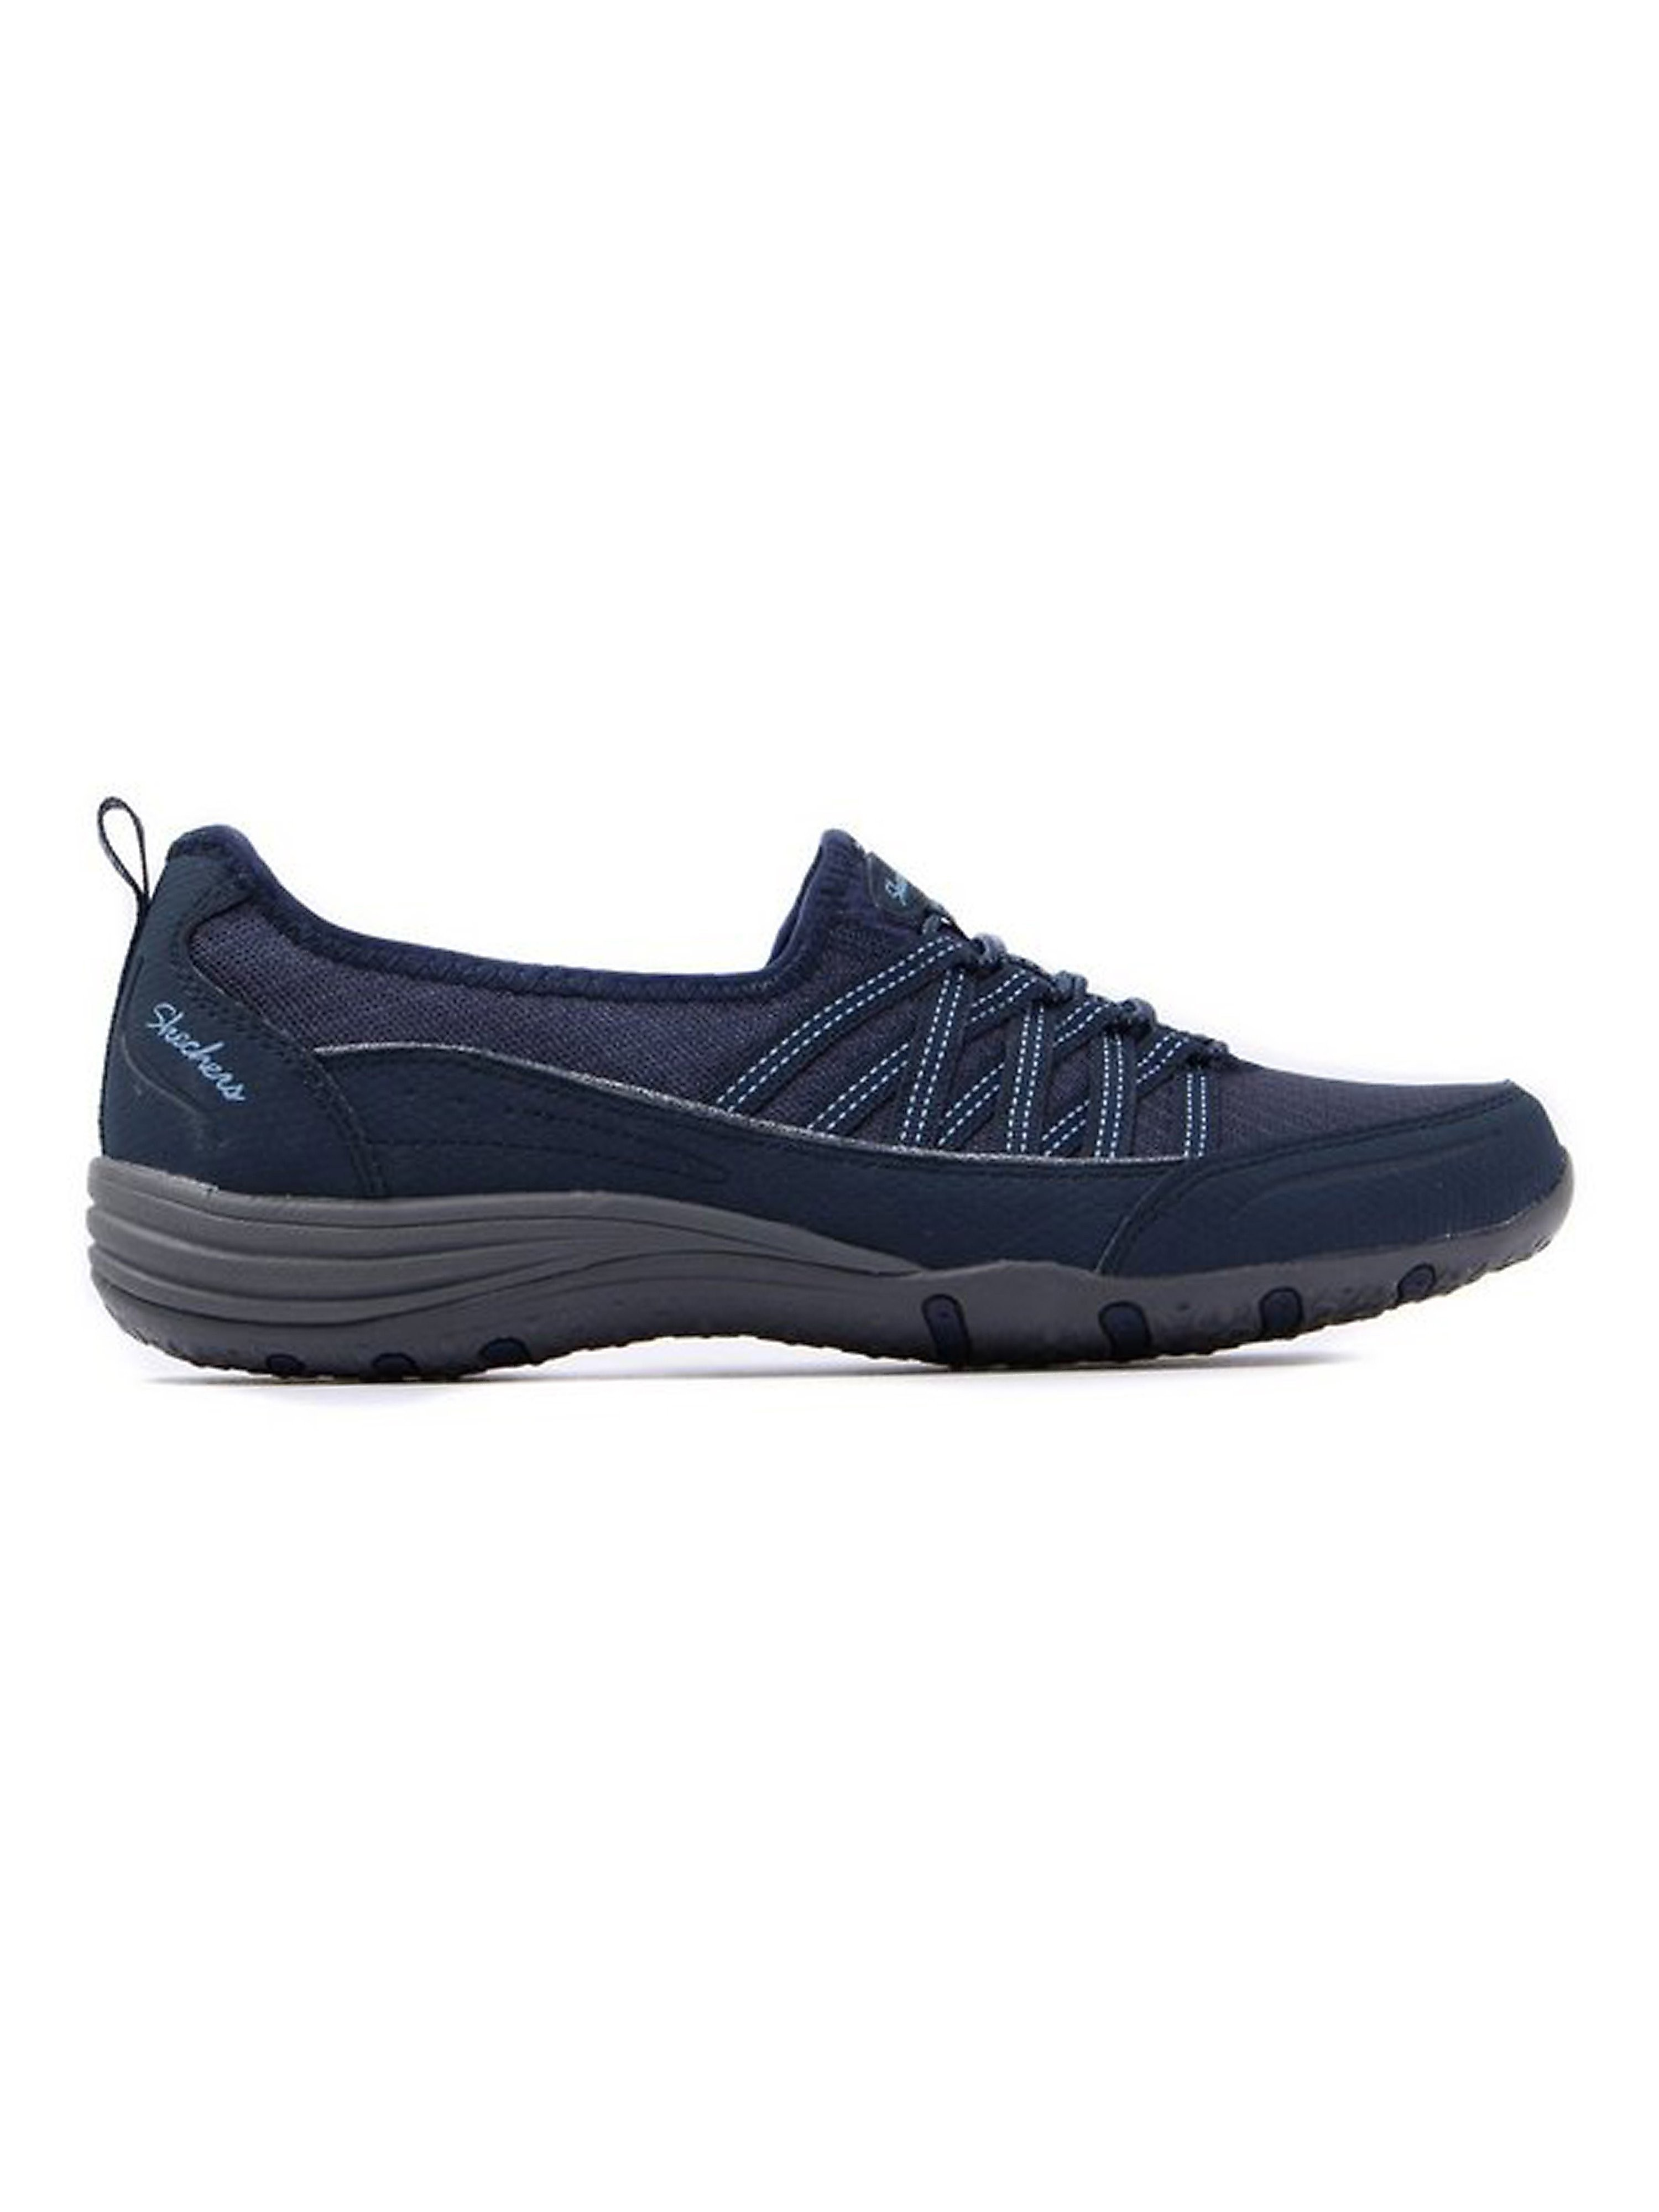 Skechers Women's Unity Go Big Trainers - Navy